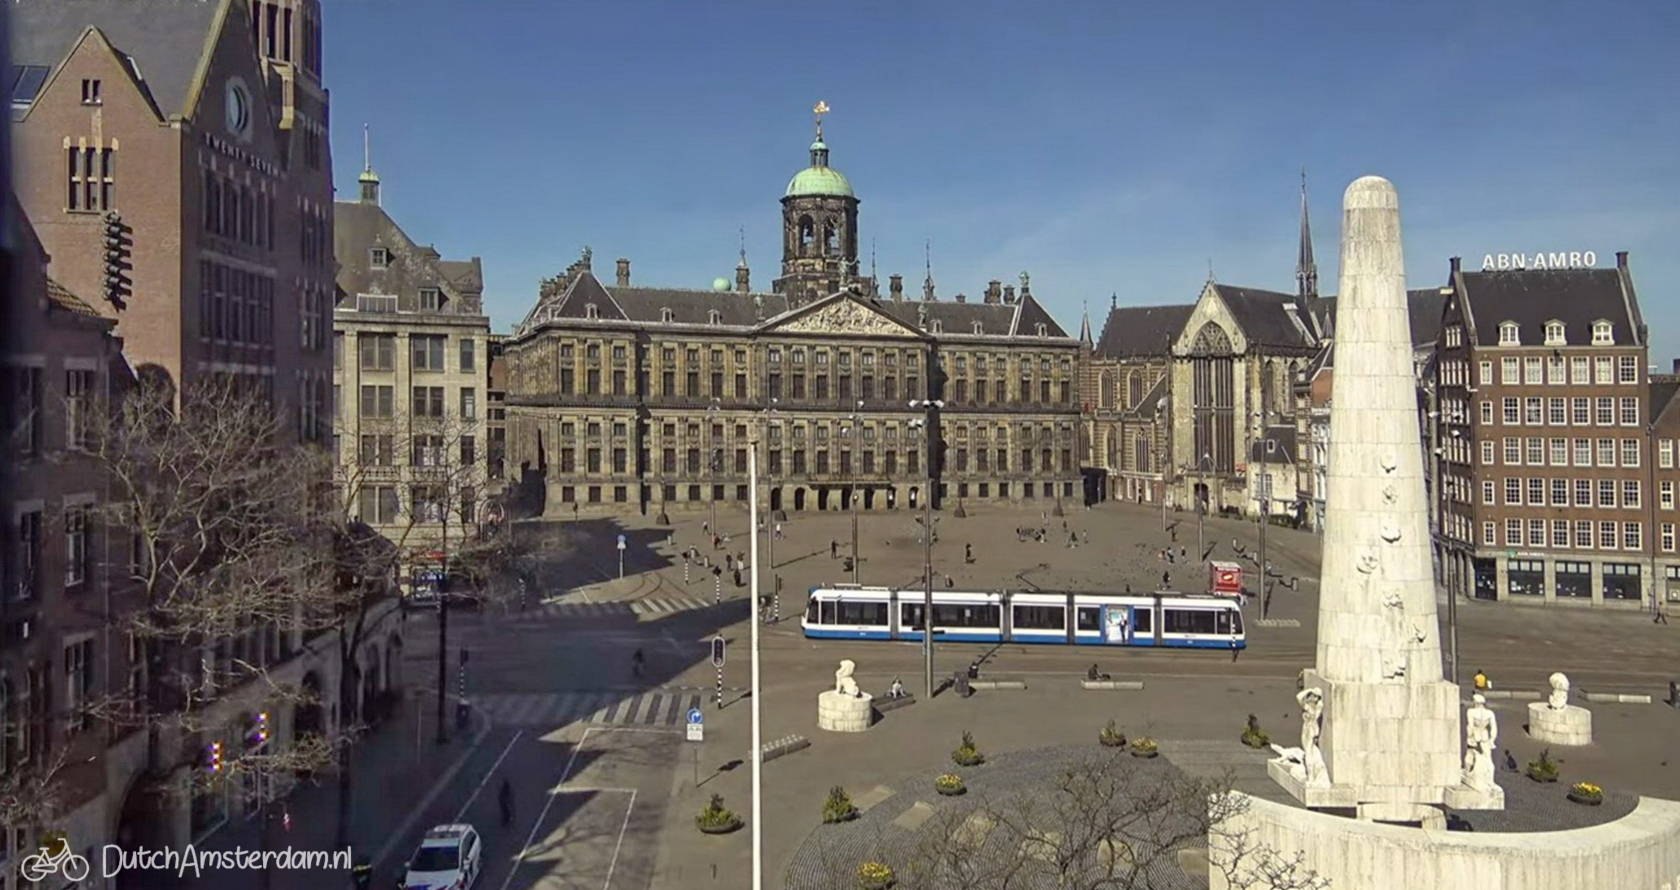 Dam square, normally one of Amsterdam's busiest squares, seen during the Coronavirus lockdown